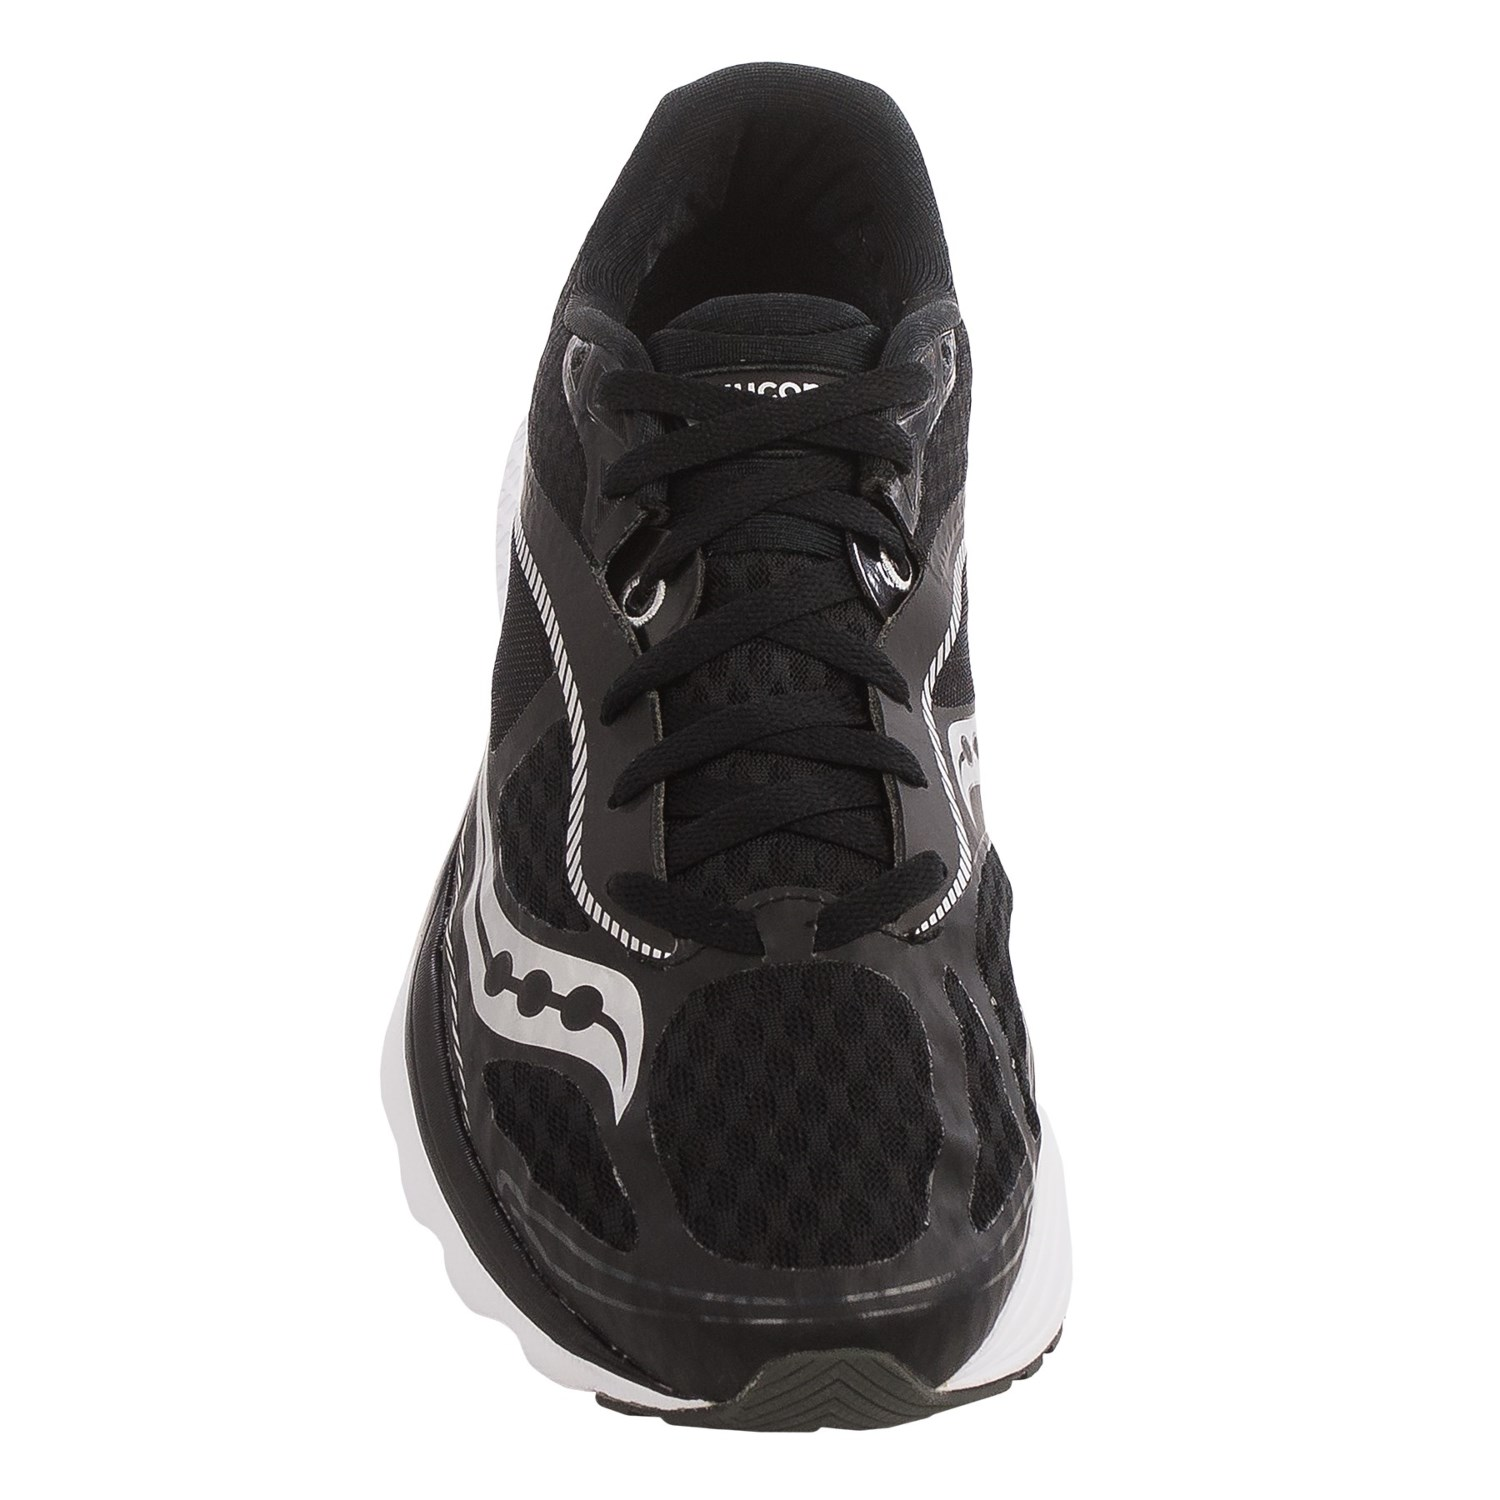 Off75Discounted To Saucony Up Buy Shoes Clearancegt; Running Ib6y7vfYg